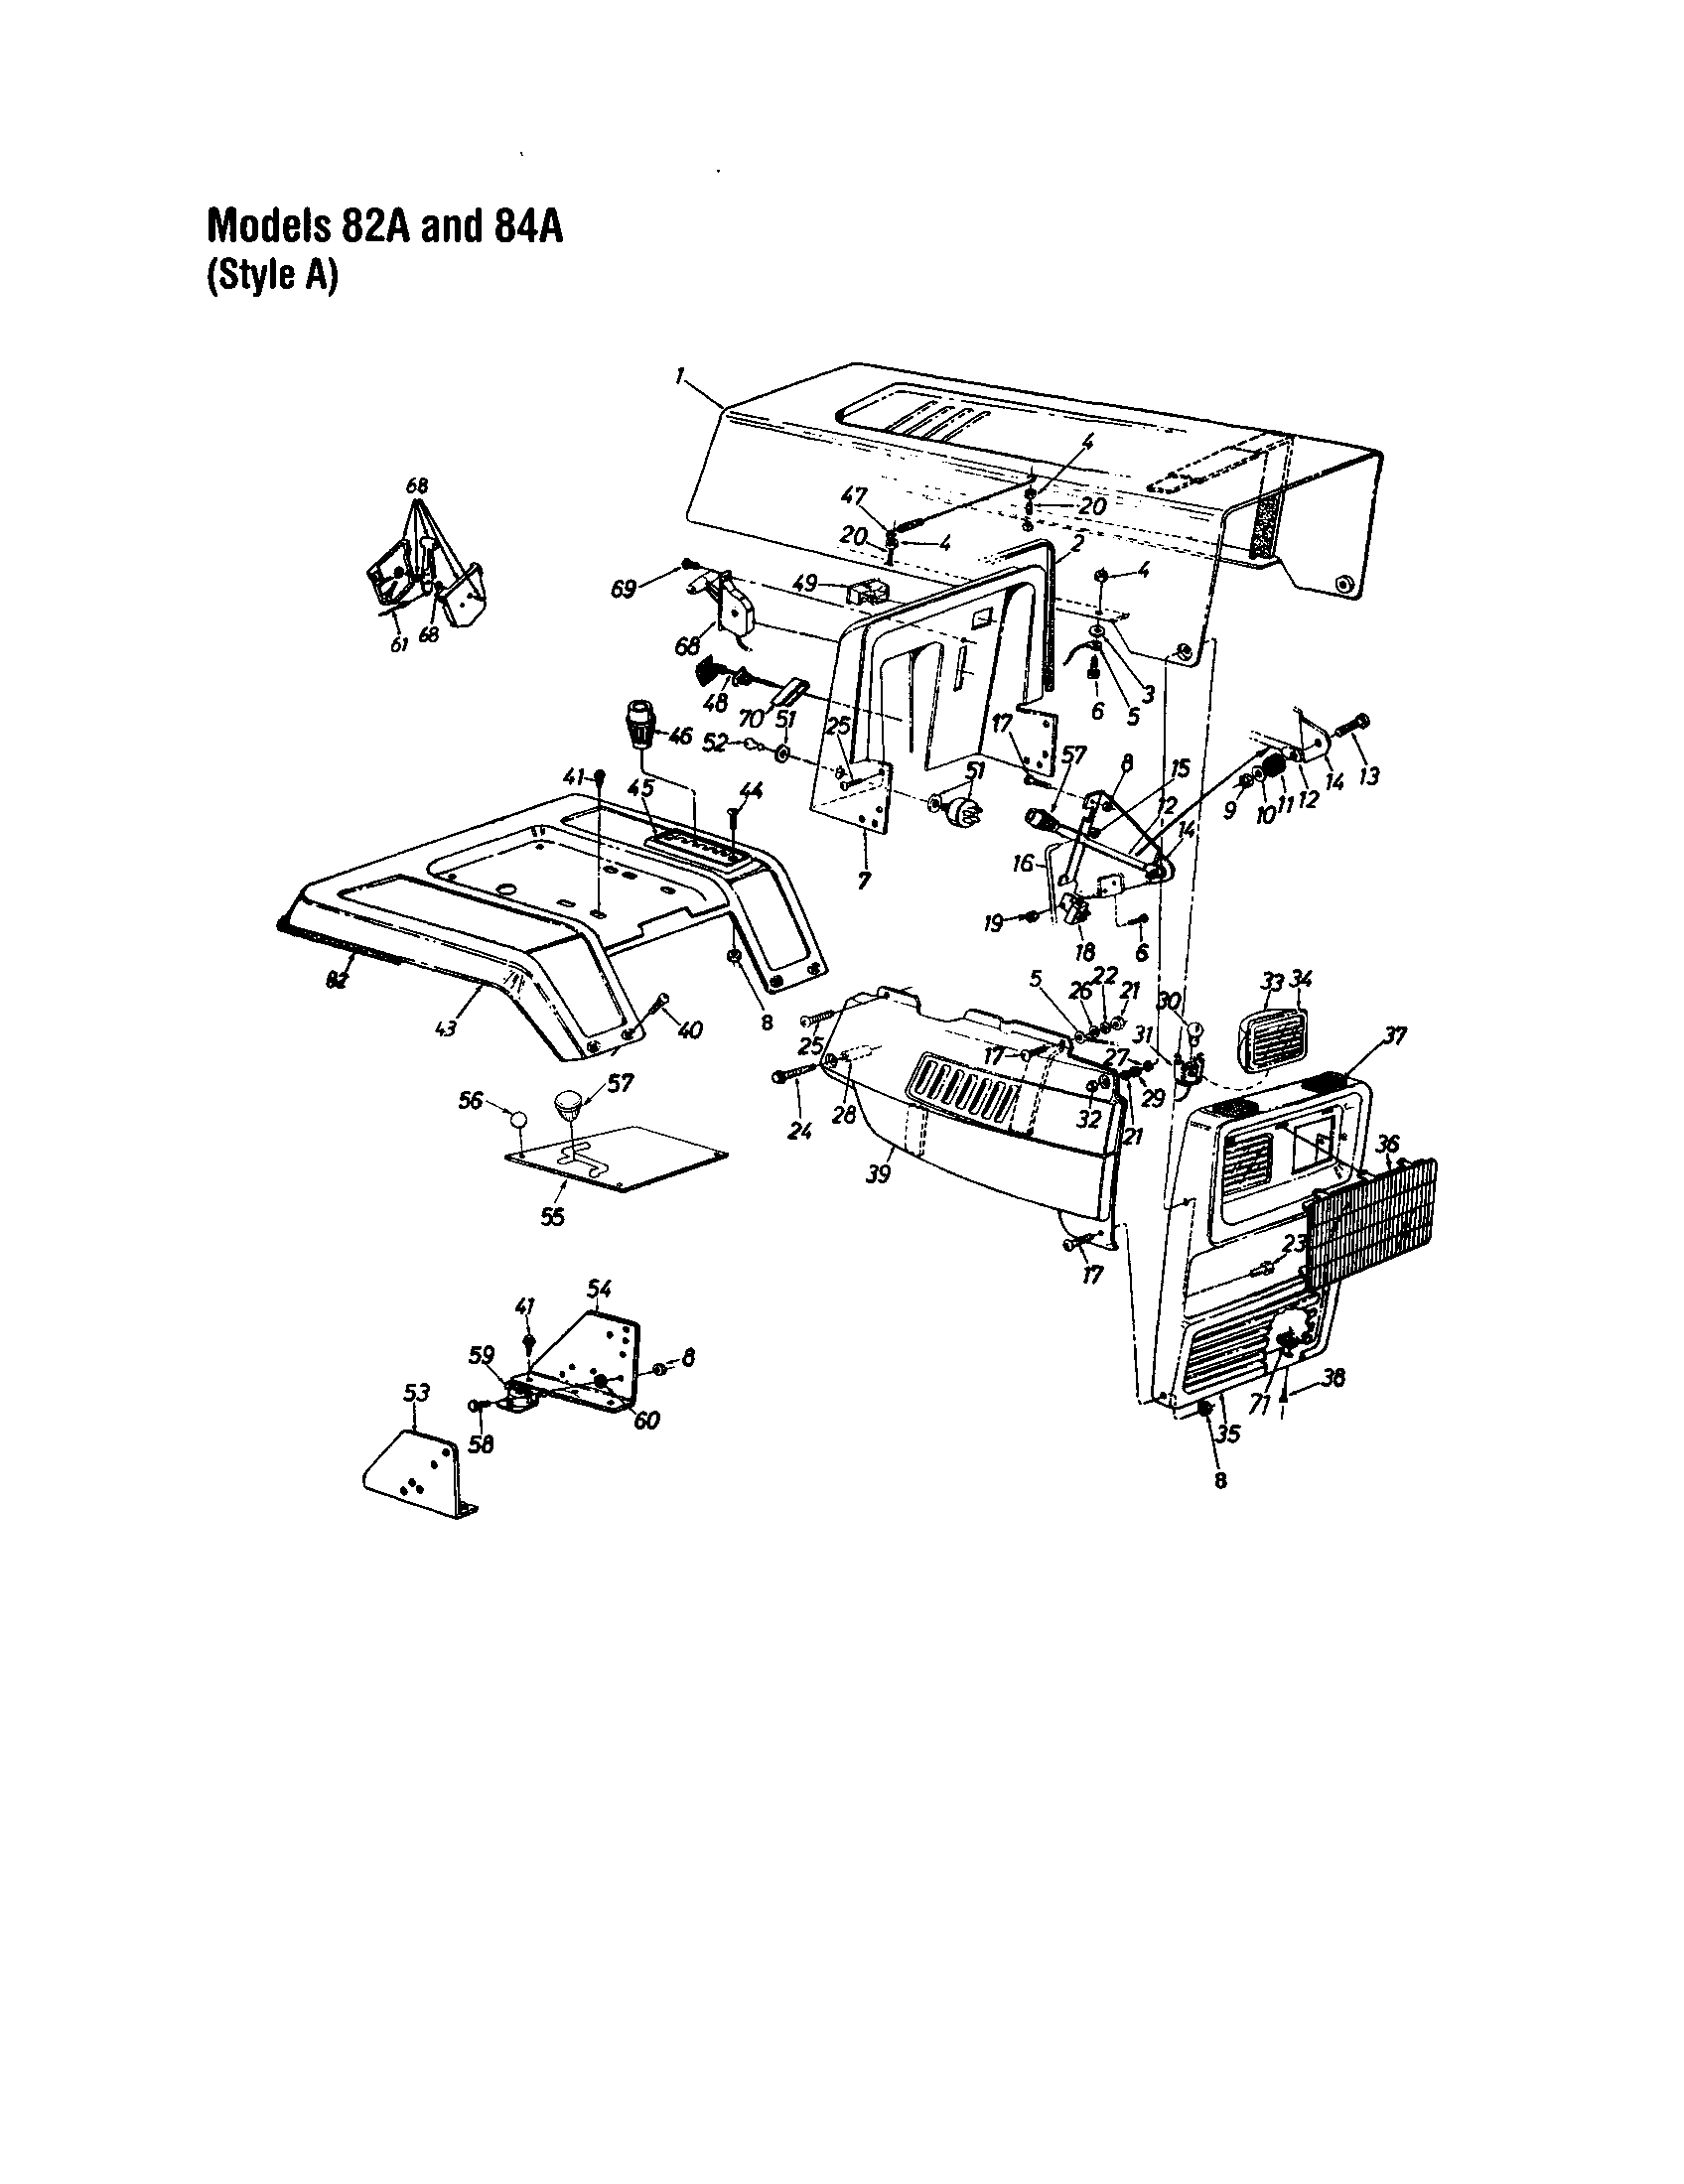 MTD 820 THRU 829 hood/grille - style a - 82a and 84a diagram